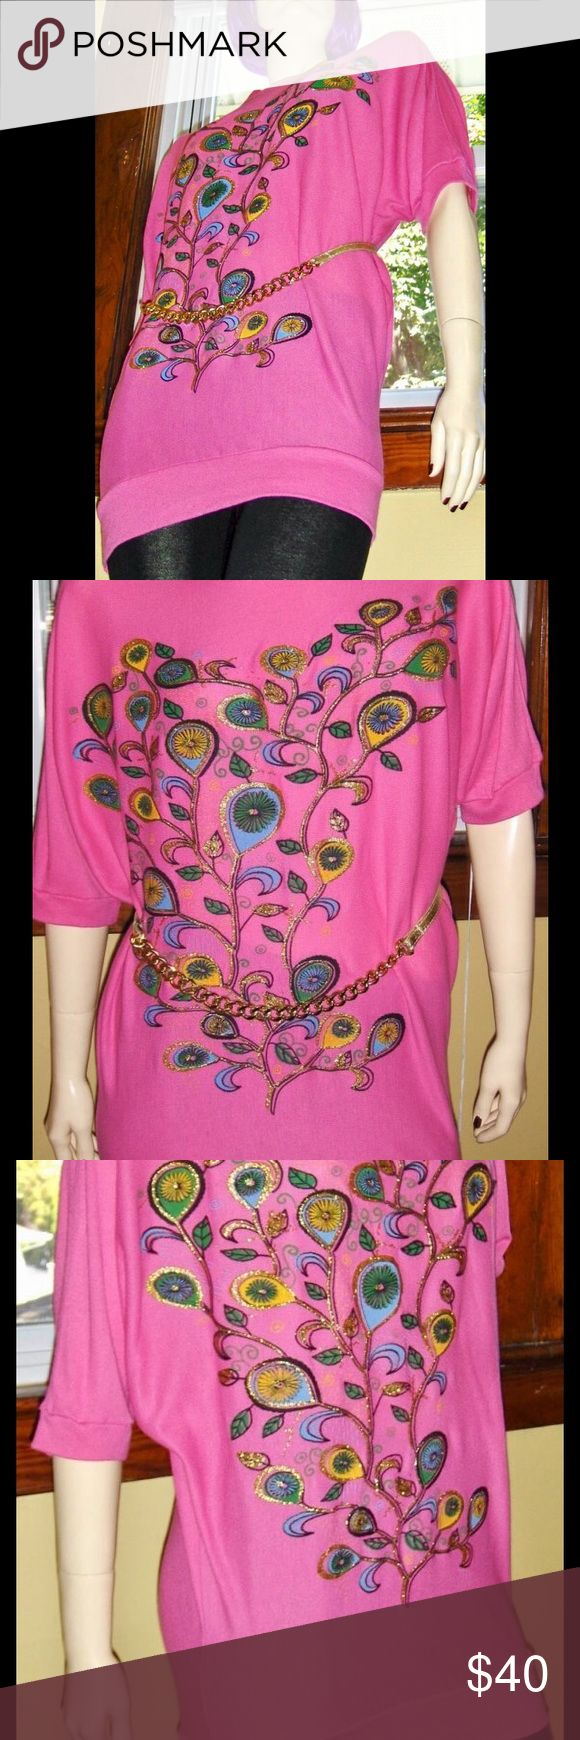 """VTG Paisley Psychedelic MOD Batwing Mini-dress Vintage DISCO, GLAM, MOD tunic top/minidress in NEON PINK w/Psychedelic 60s MOD paisley print on front outlined in gold glitter adding  DISCO GLAM appeal! Dolman batwing sleeves. Top tapers in at elasticized hem for a figure-flattering fit. A must-have for the 80s GLAM lover.  Size:ONE SIZE FITS ALL printed on label  Bust & Waist:Full & free 32"""" unstretched to app 36"""" (or 38"""") snug measured across hem Length:30"""" sh-hem Brand: N/I…"""